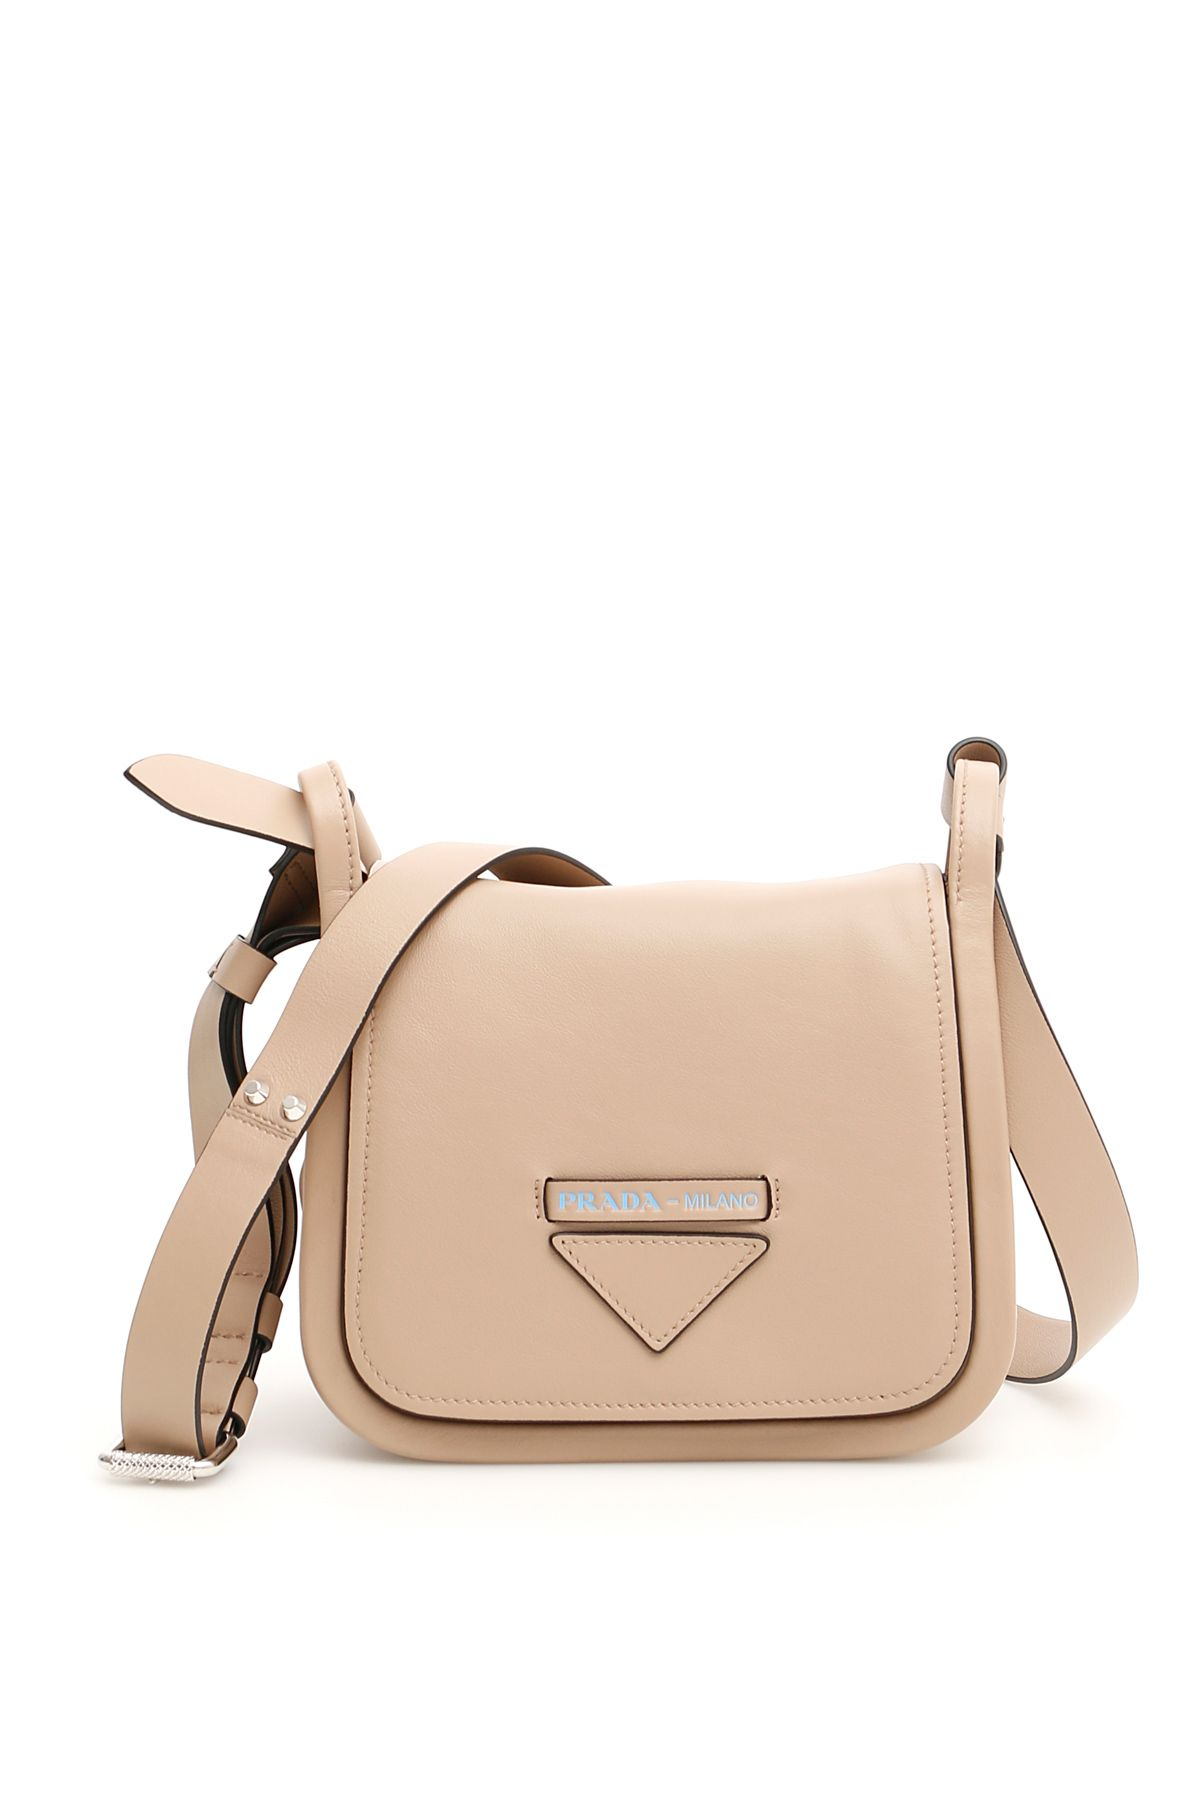 prada bags women concept bag